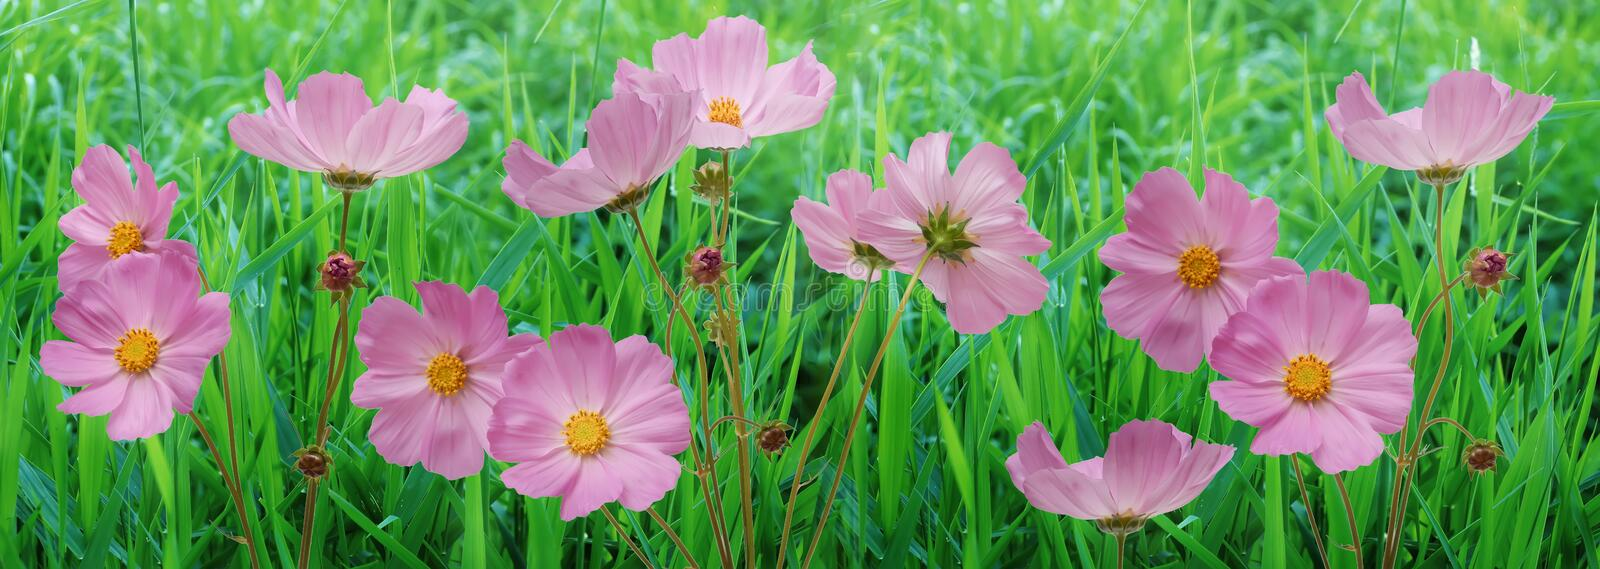 Border pink flowers cosmos flowers in the garden. beautiful floral background. Closeup royalty free stock photography